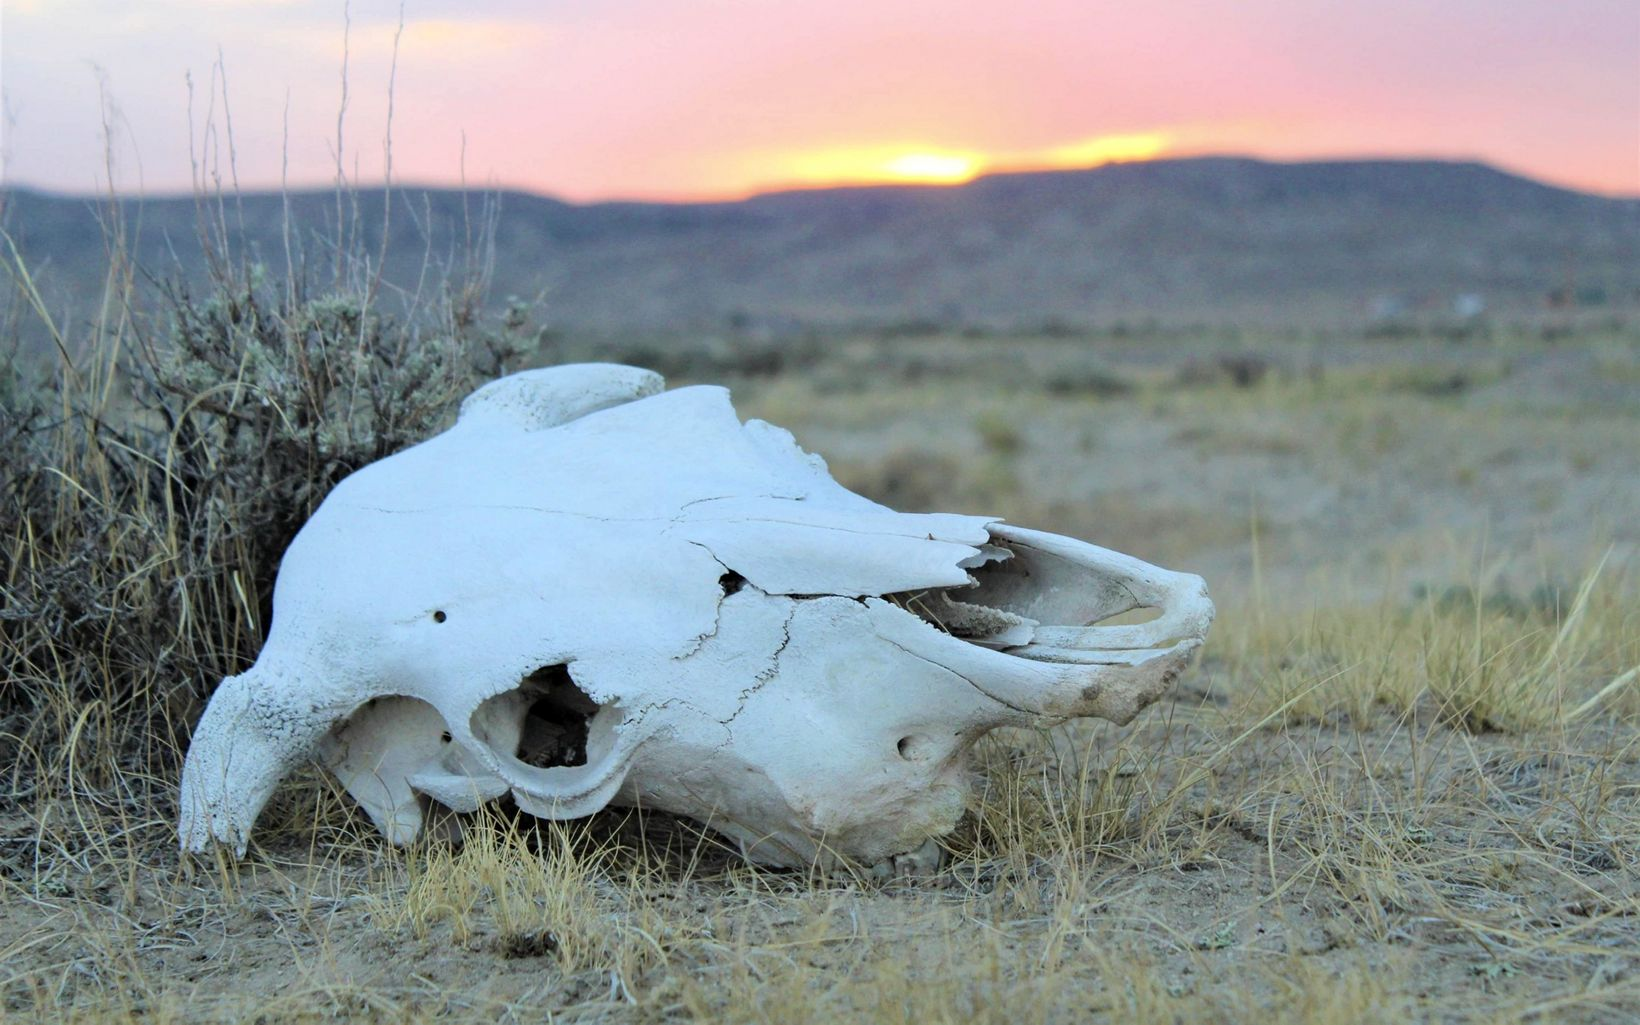 Huge dried out skull on ground at sunset.